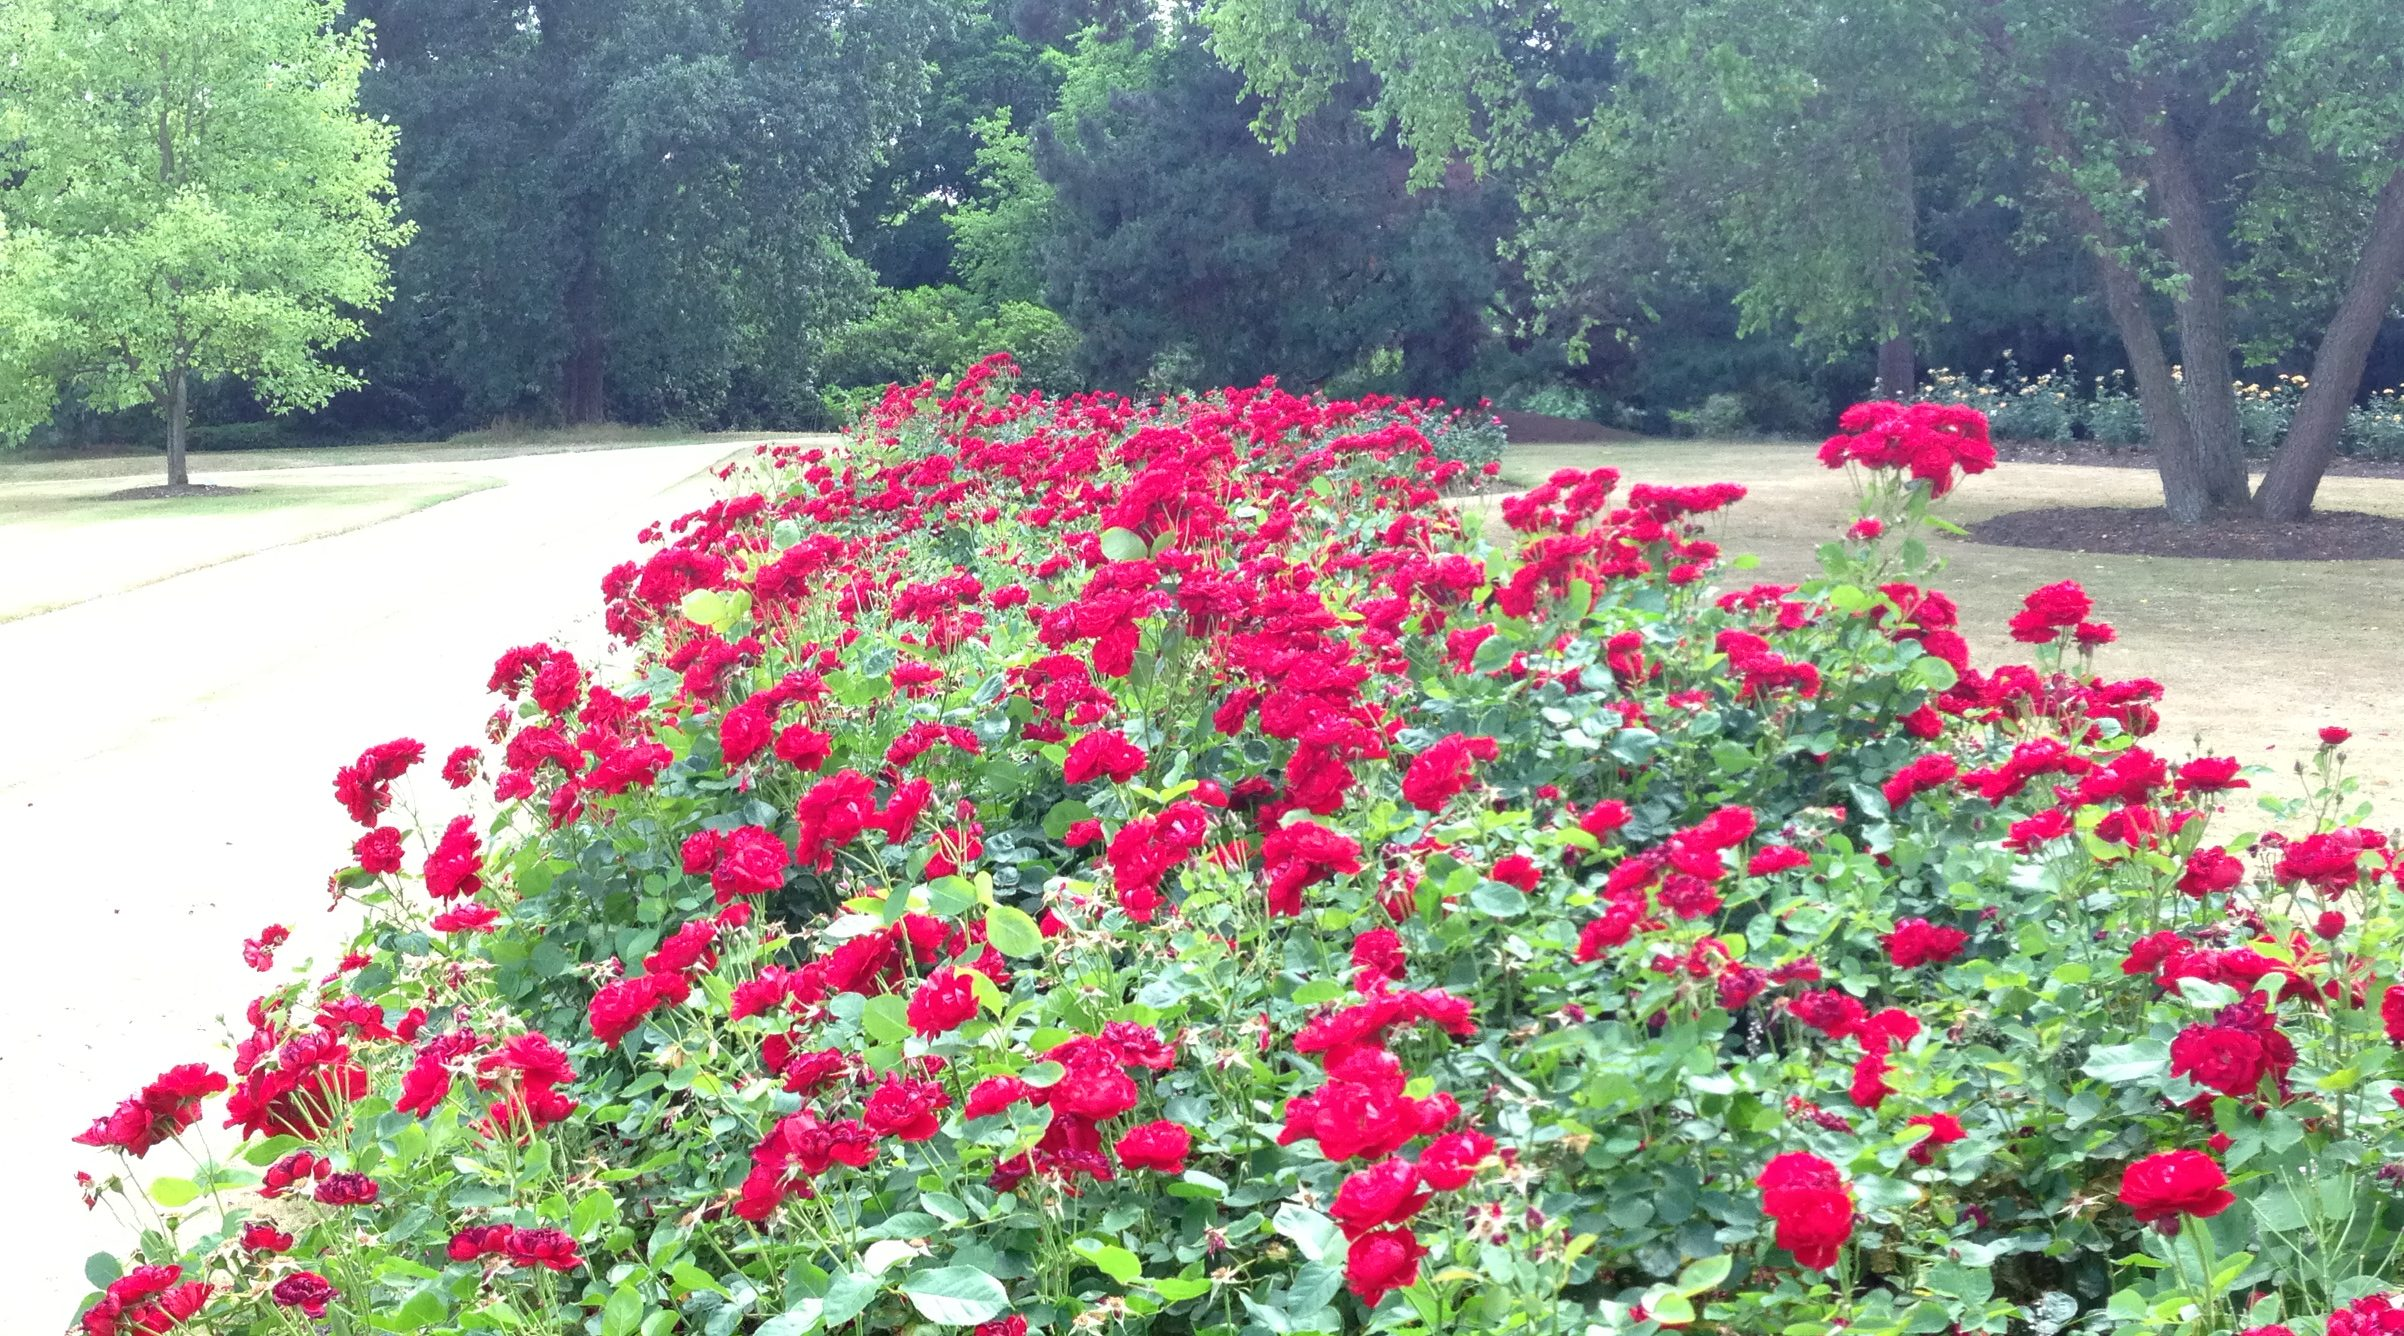 roses in full bloom at Savill Gardens Windsor